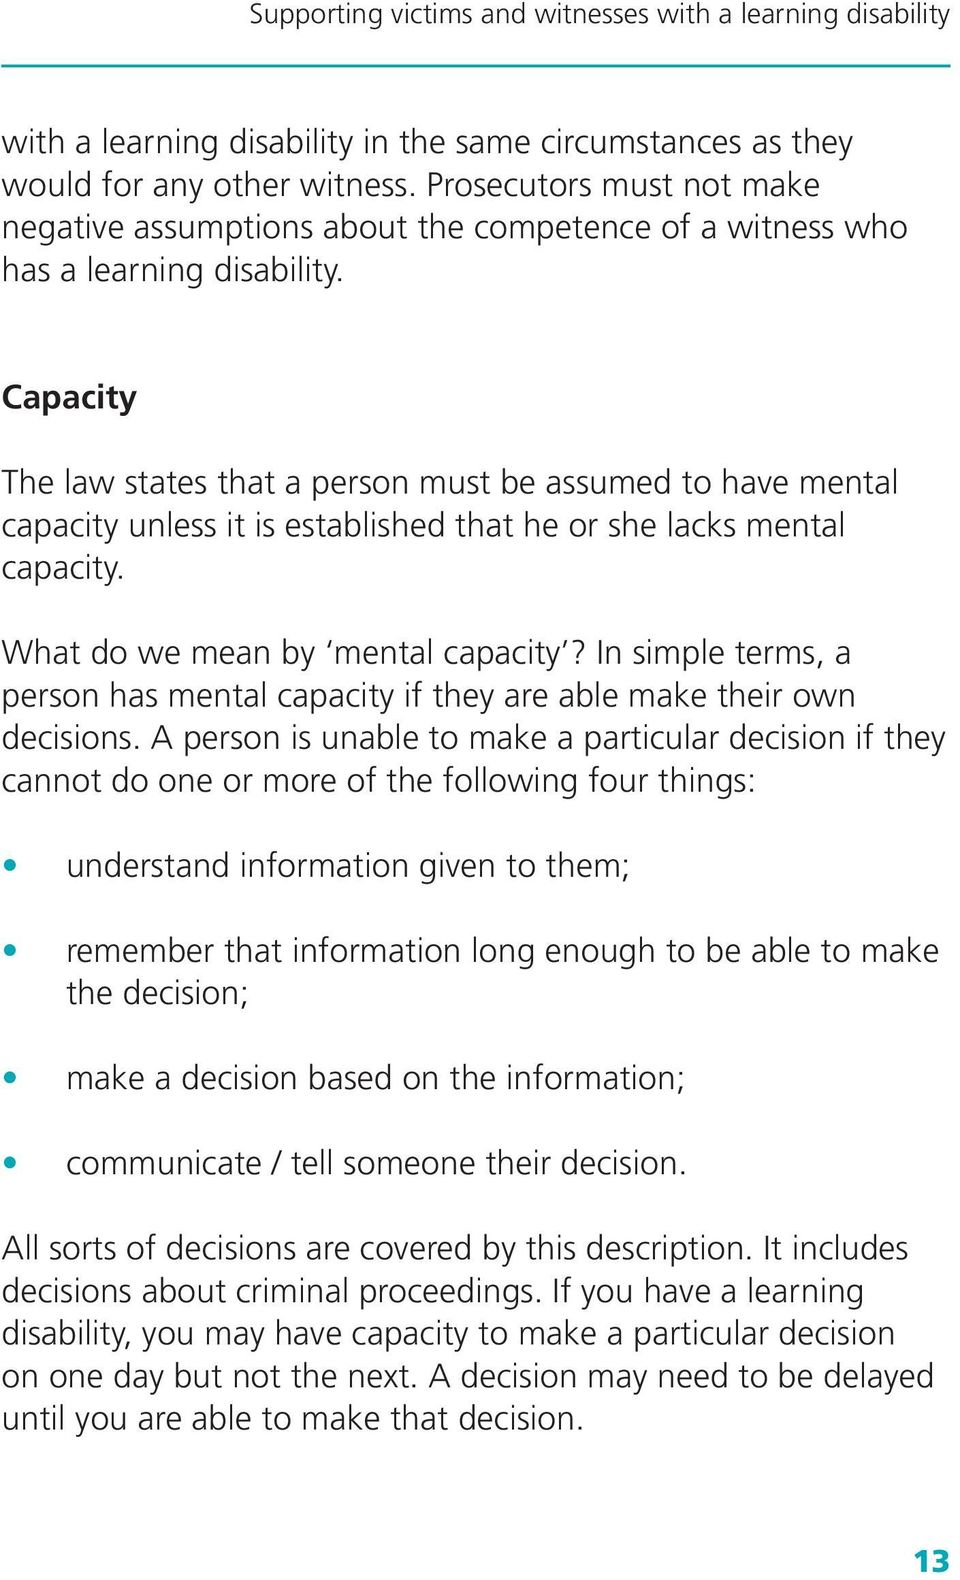 Capacity The law states that a person must be assumed to have mental capacity unless it is established that he or she lacks mental capacity. What do we mean by mental capacity?